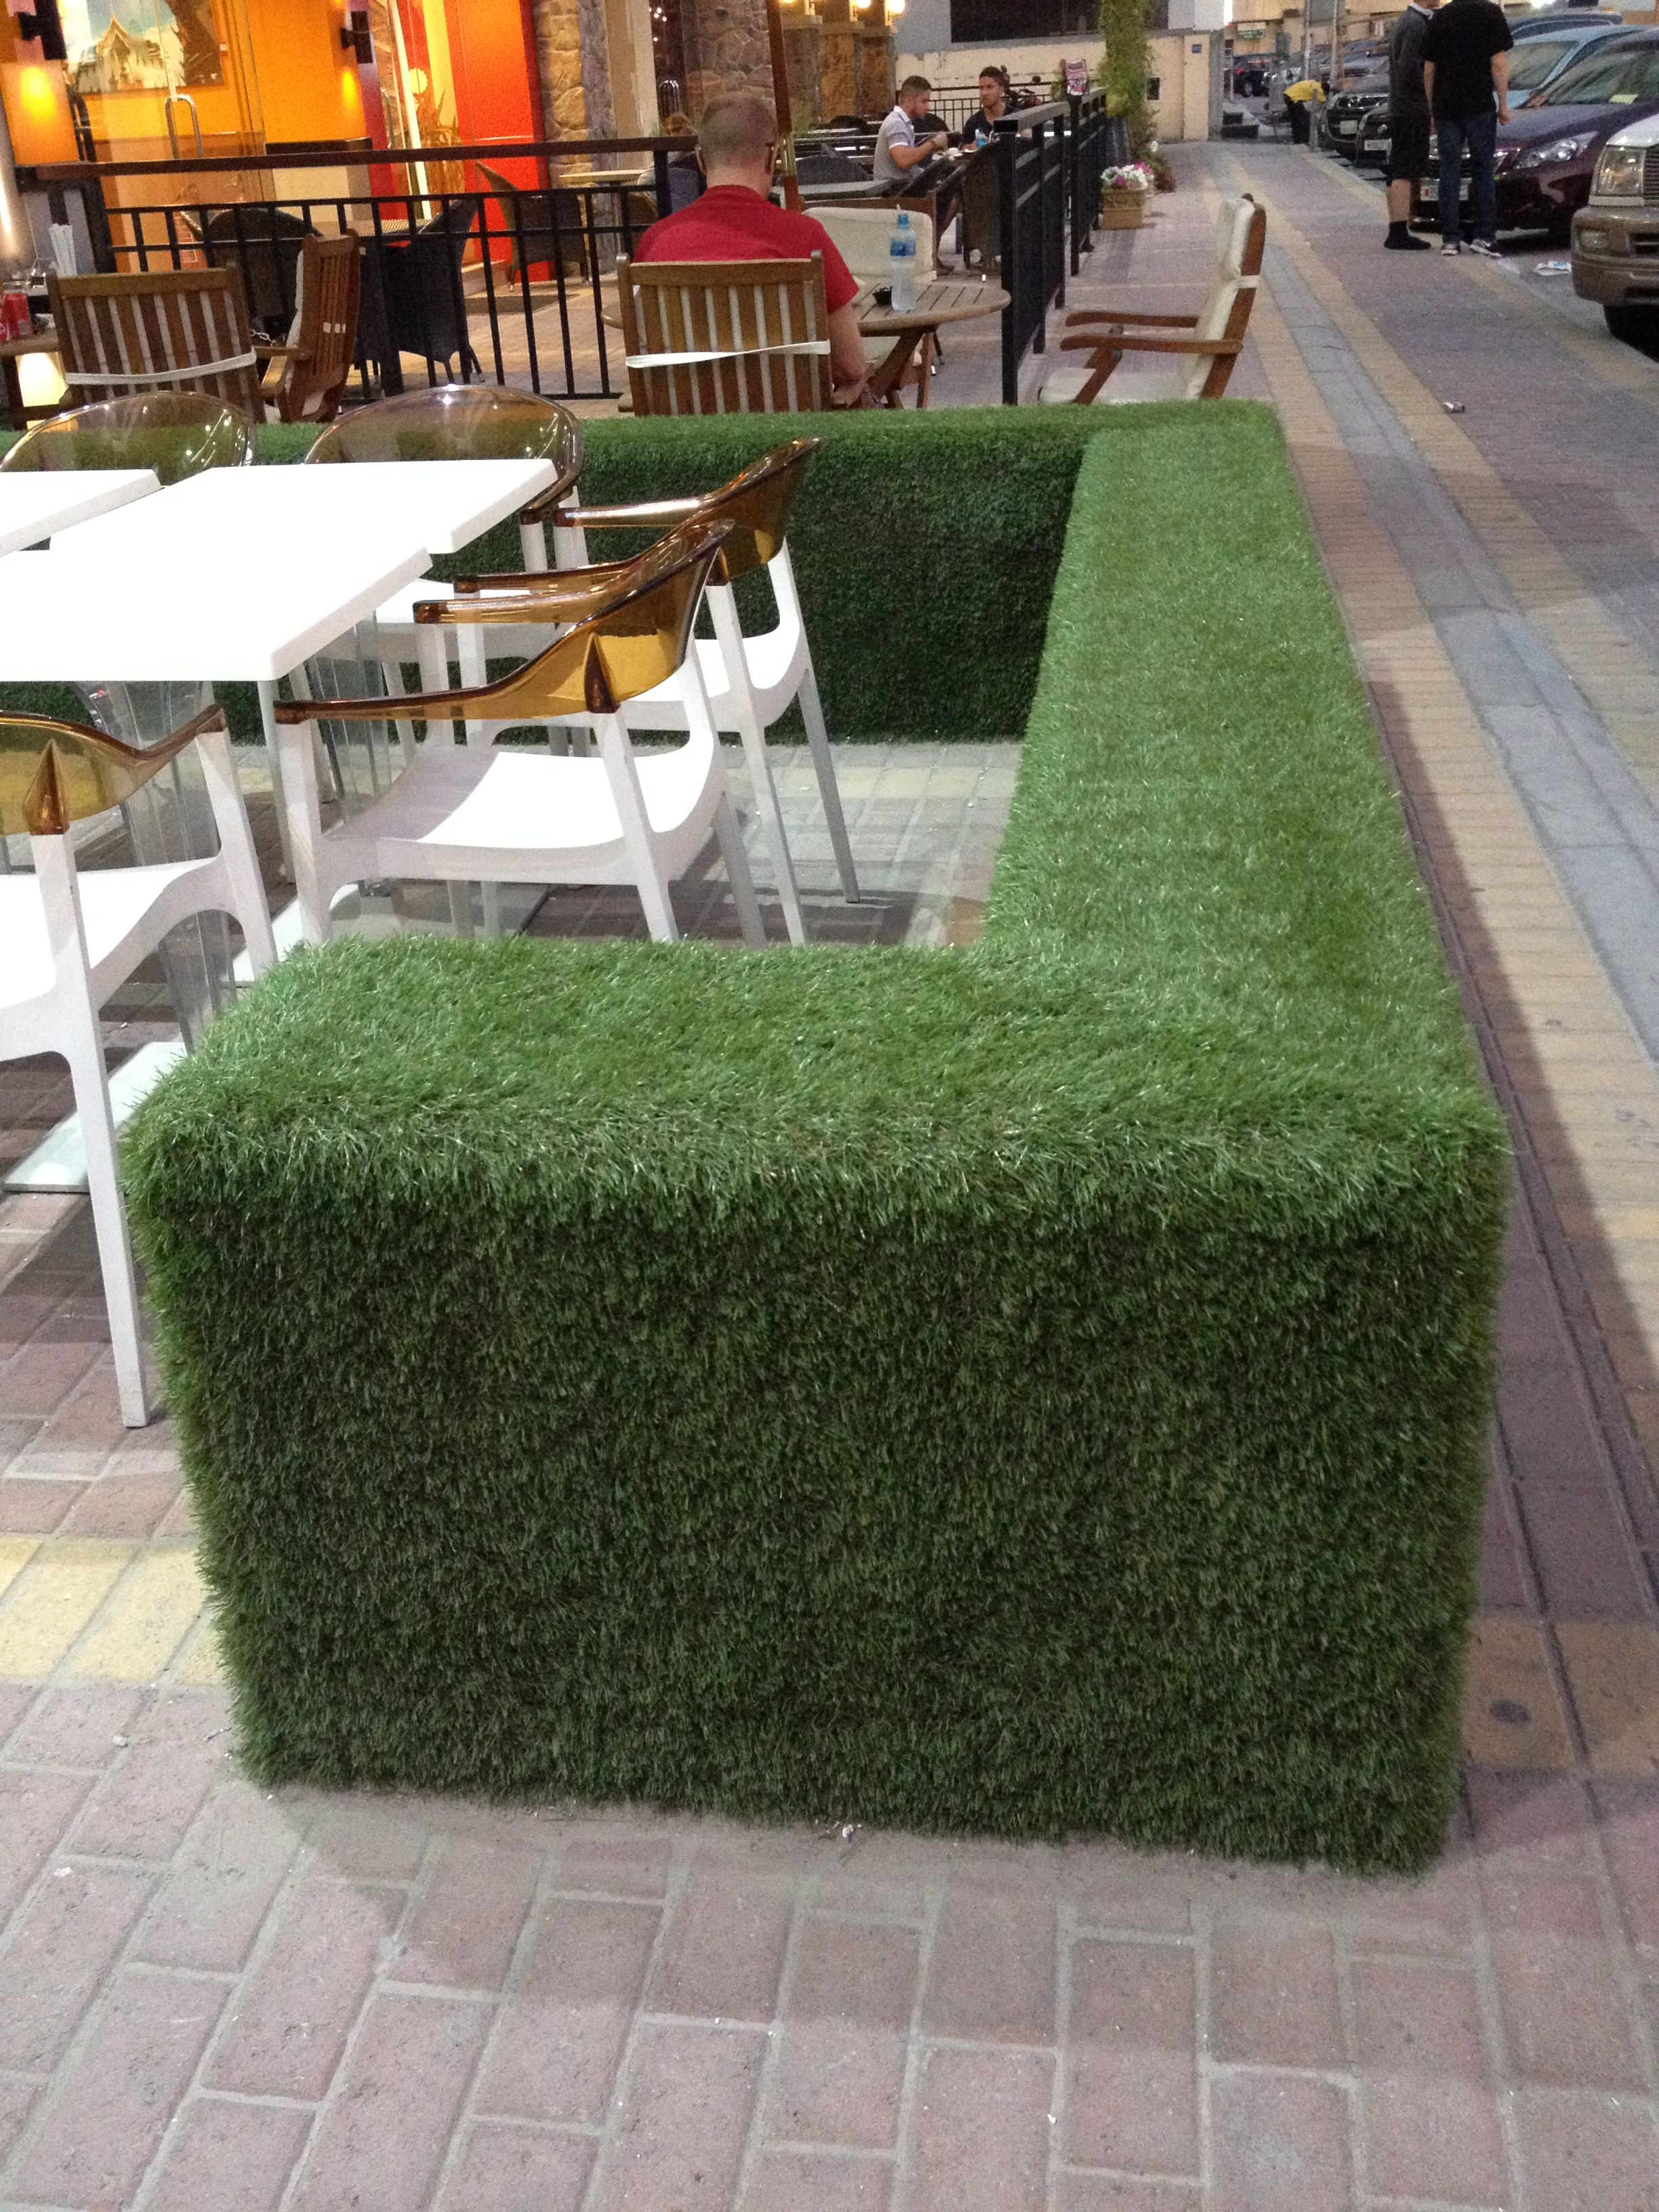 Fake Grass Room Dividers Indoor Playground Fun Fittings Fixtures Pinterest Fake Grass